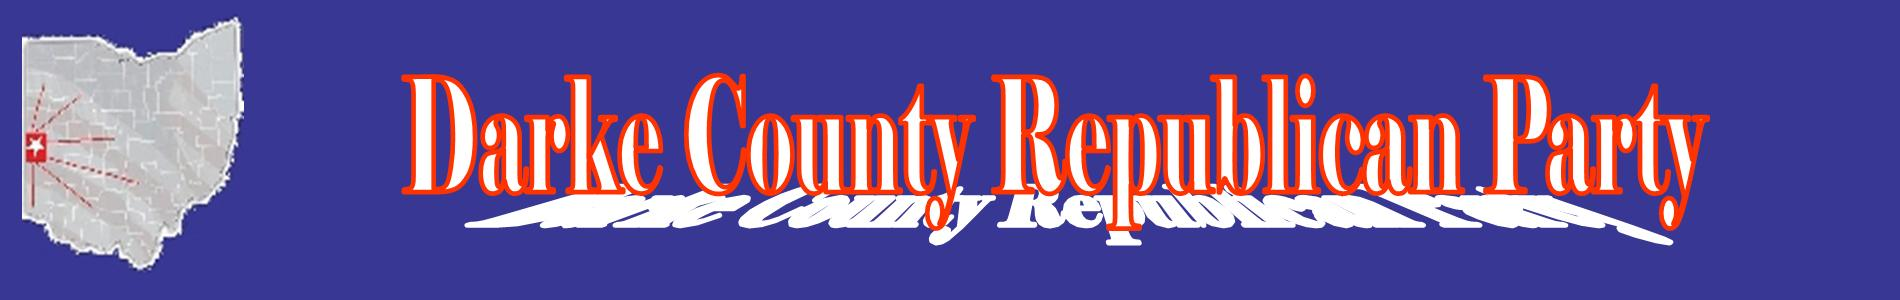 Darke County Republican Party